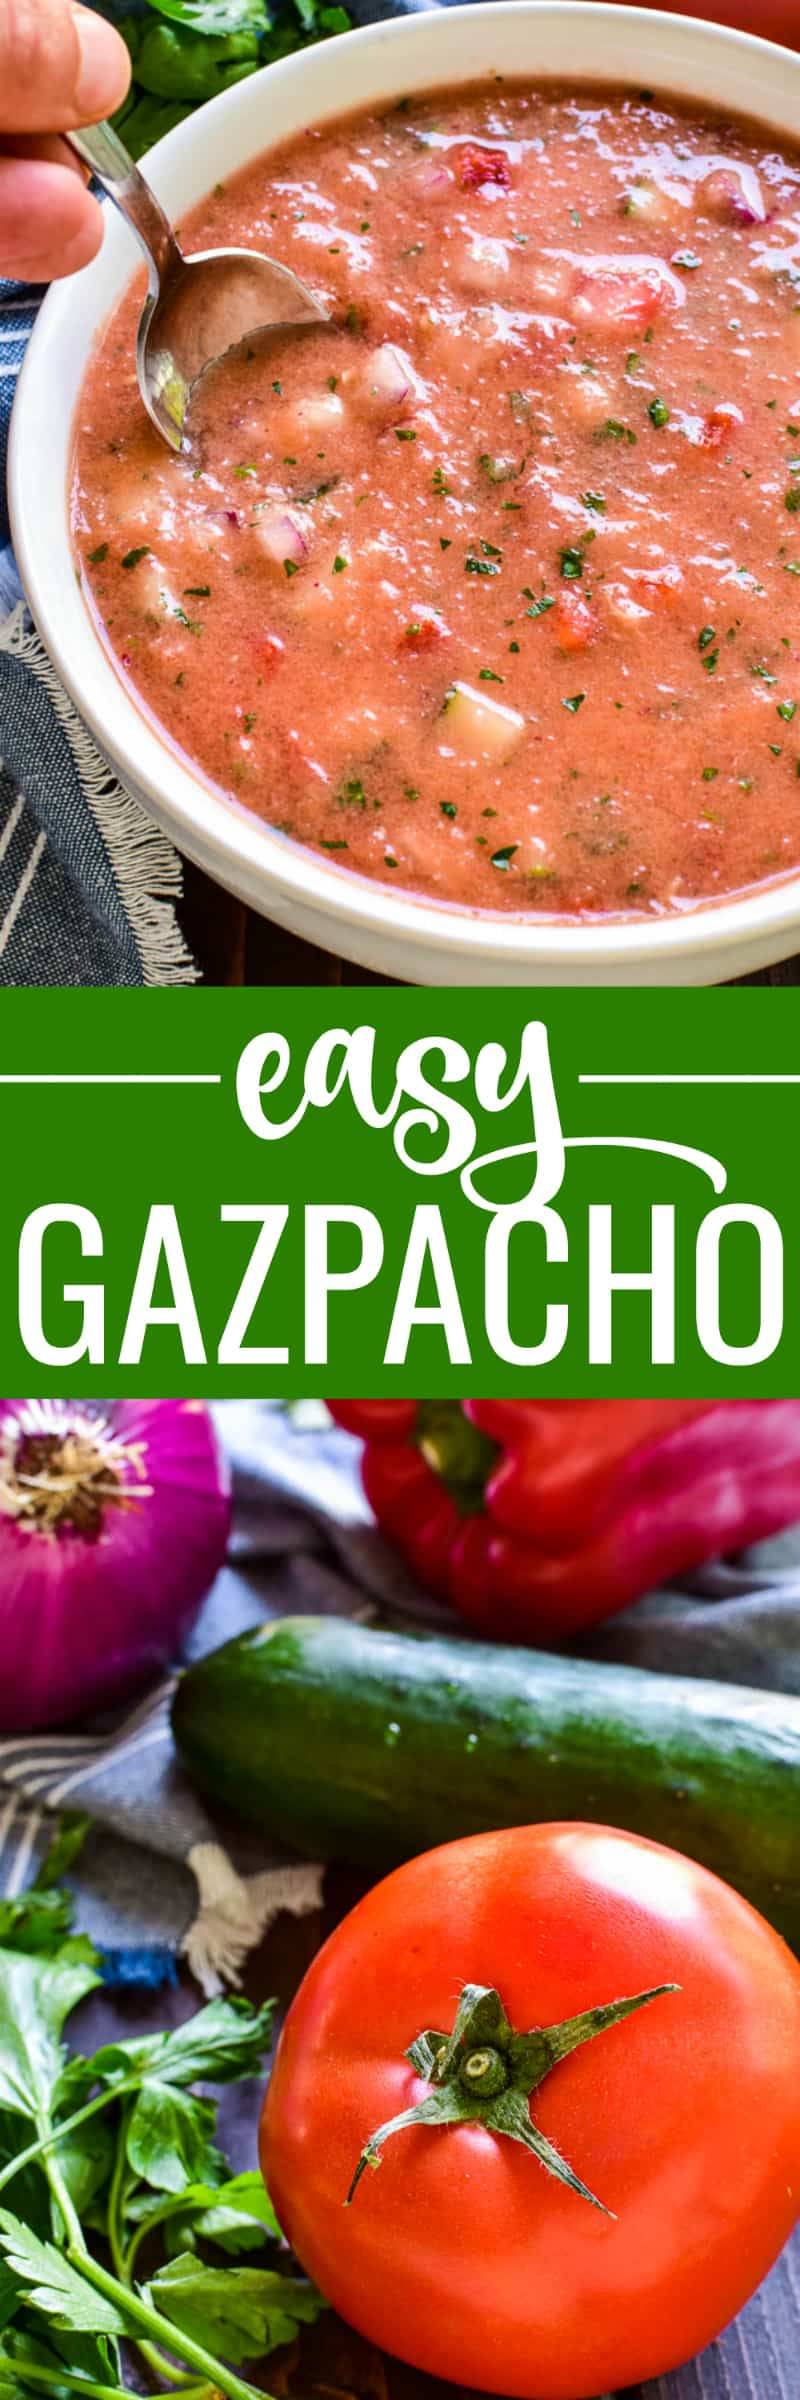 This Easy Gazpacho is the perfect way to make use of fresh garden veggies! Loaded with ripe tomatoes, cucumbers, red peppers, and onions, this chilled soup has just the right blend of flavors and textures. It makes a delicious lunch or dinner, and could also be served a light appetizer.